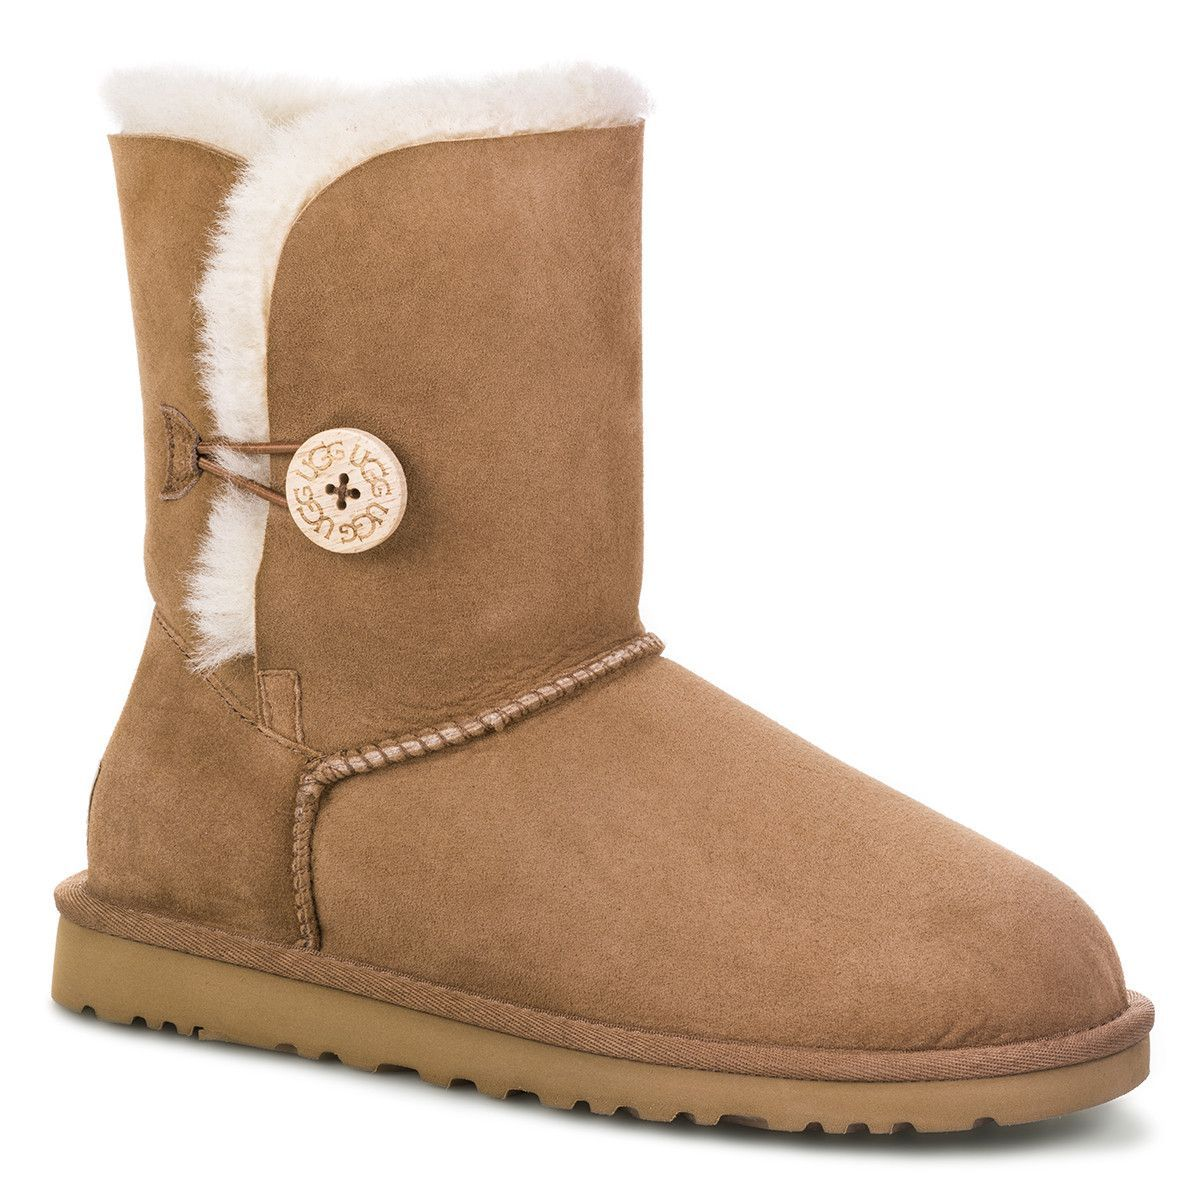 8bb81c9cc64 new arrivals ugg bailey button short boots 362fc 3a0d3